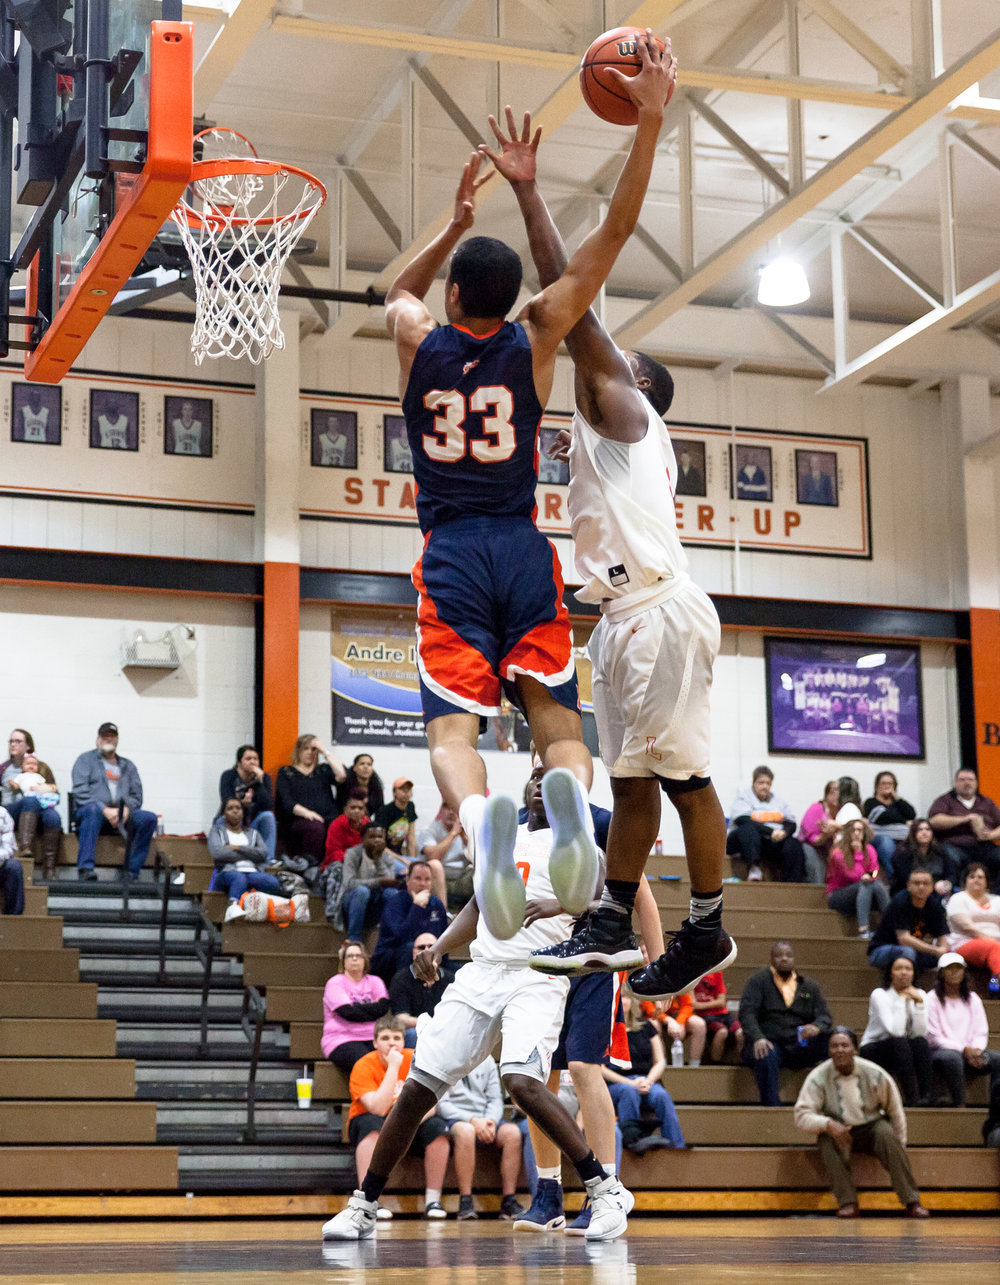 Lanphier's Yaakema Rose (1) fouls Rochester's Collin Stallworth (33) as he attempts a dunk in the first quarter during the Class 3A Lanphier Regional at Lober-Nika Gymnasium, Tuesday, Feb. 28, 2017, in Springfield, Ill. [Justin L. Fowler/The State Journal-Register